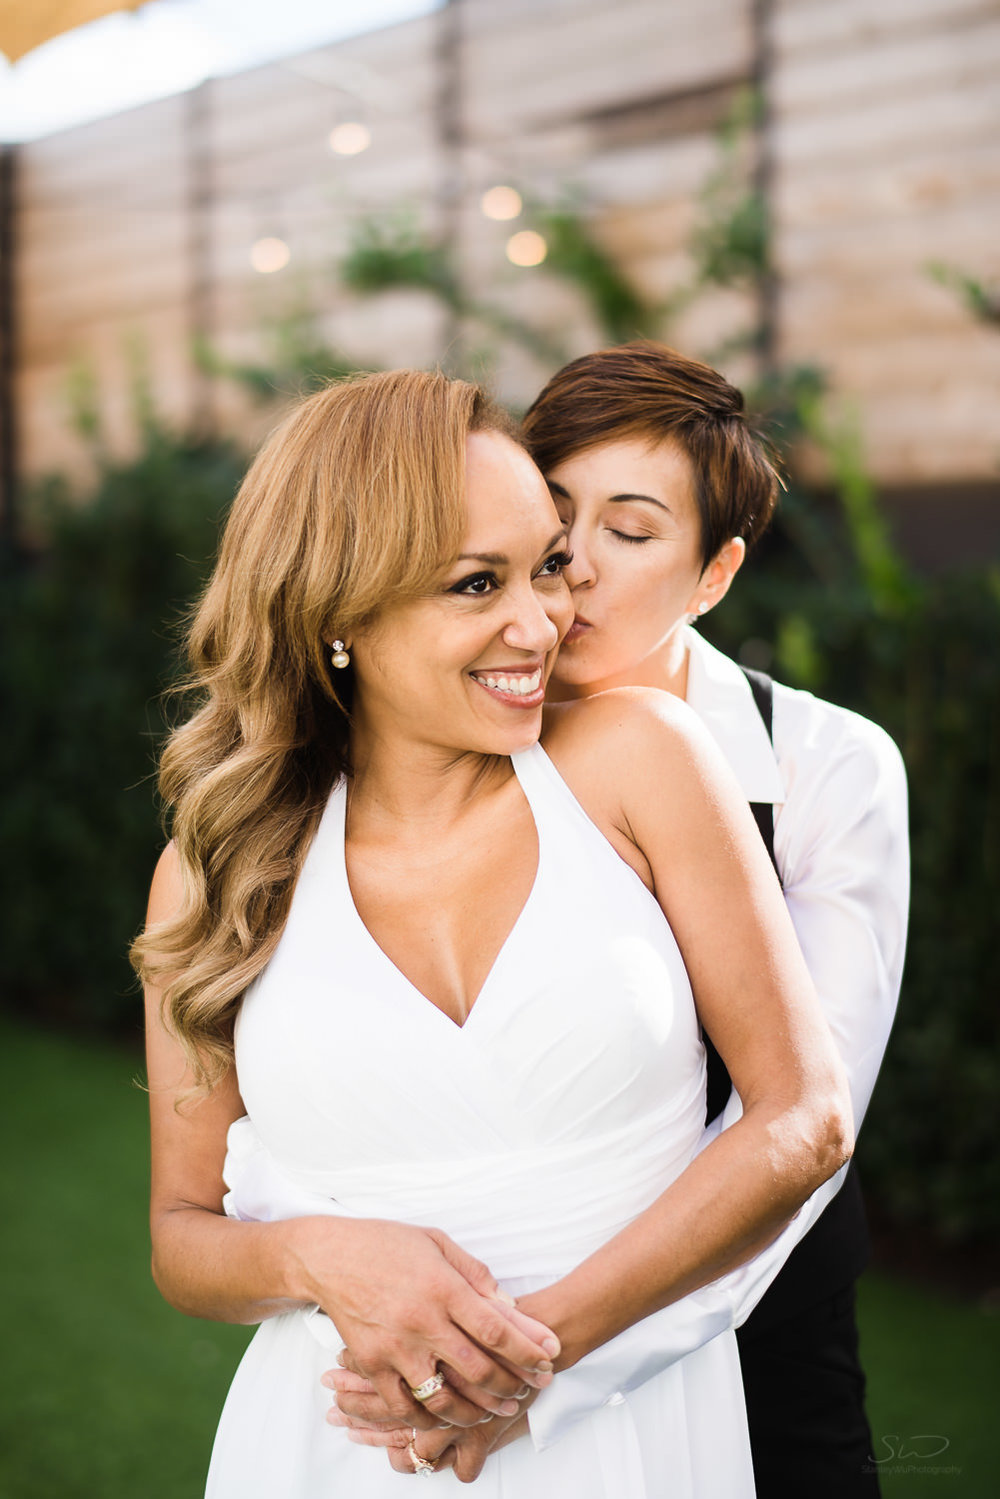 LGBTQ York Manor Highland Park Wedding. Los Angeles and Orange County Engagement and Wedding Photographer.